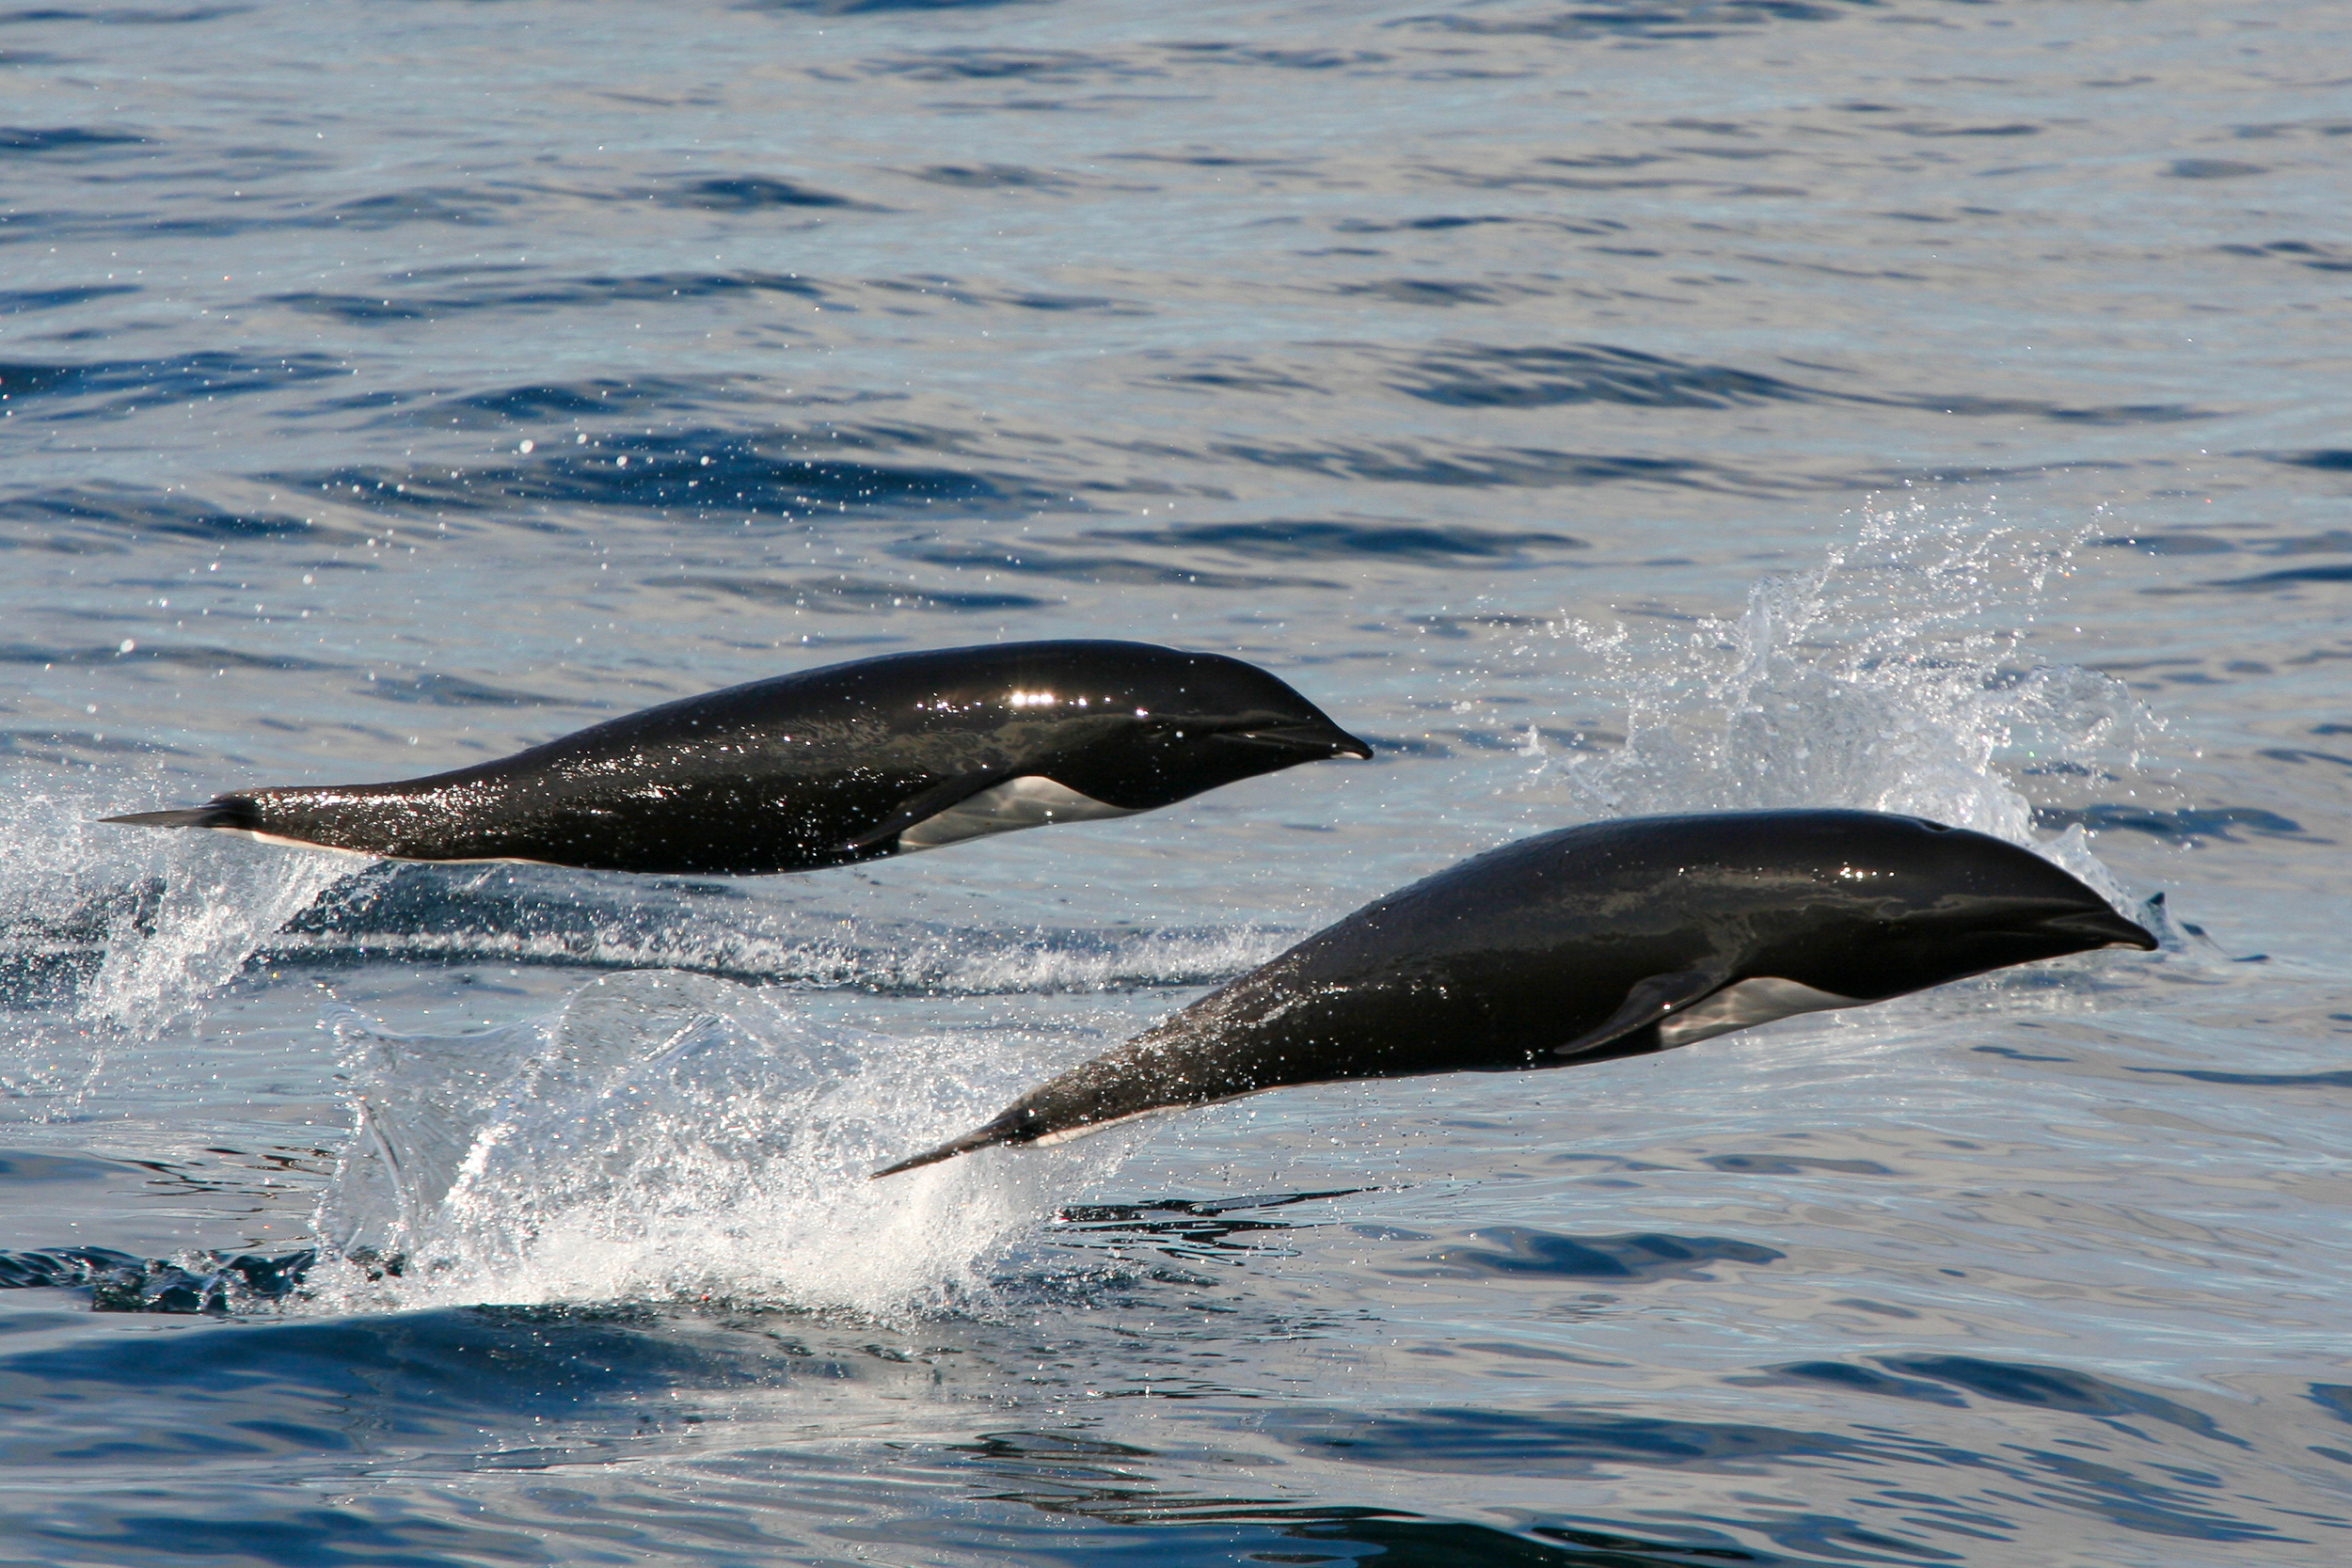 Northern-right Whale Dolphins, Monterey Bay